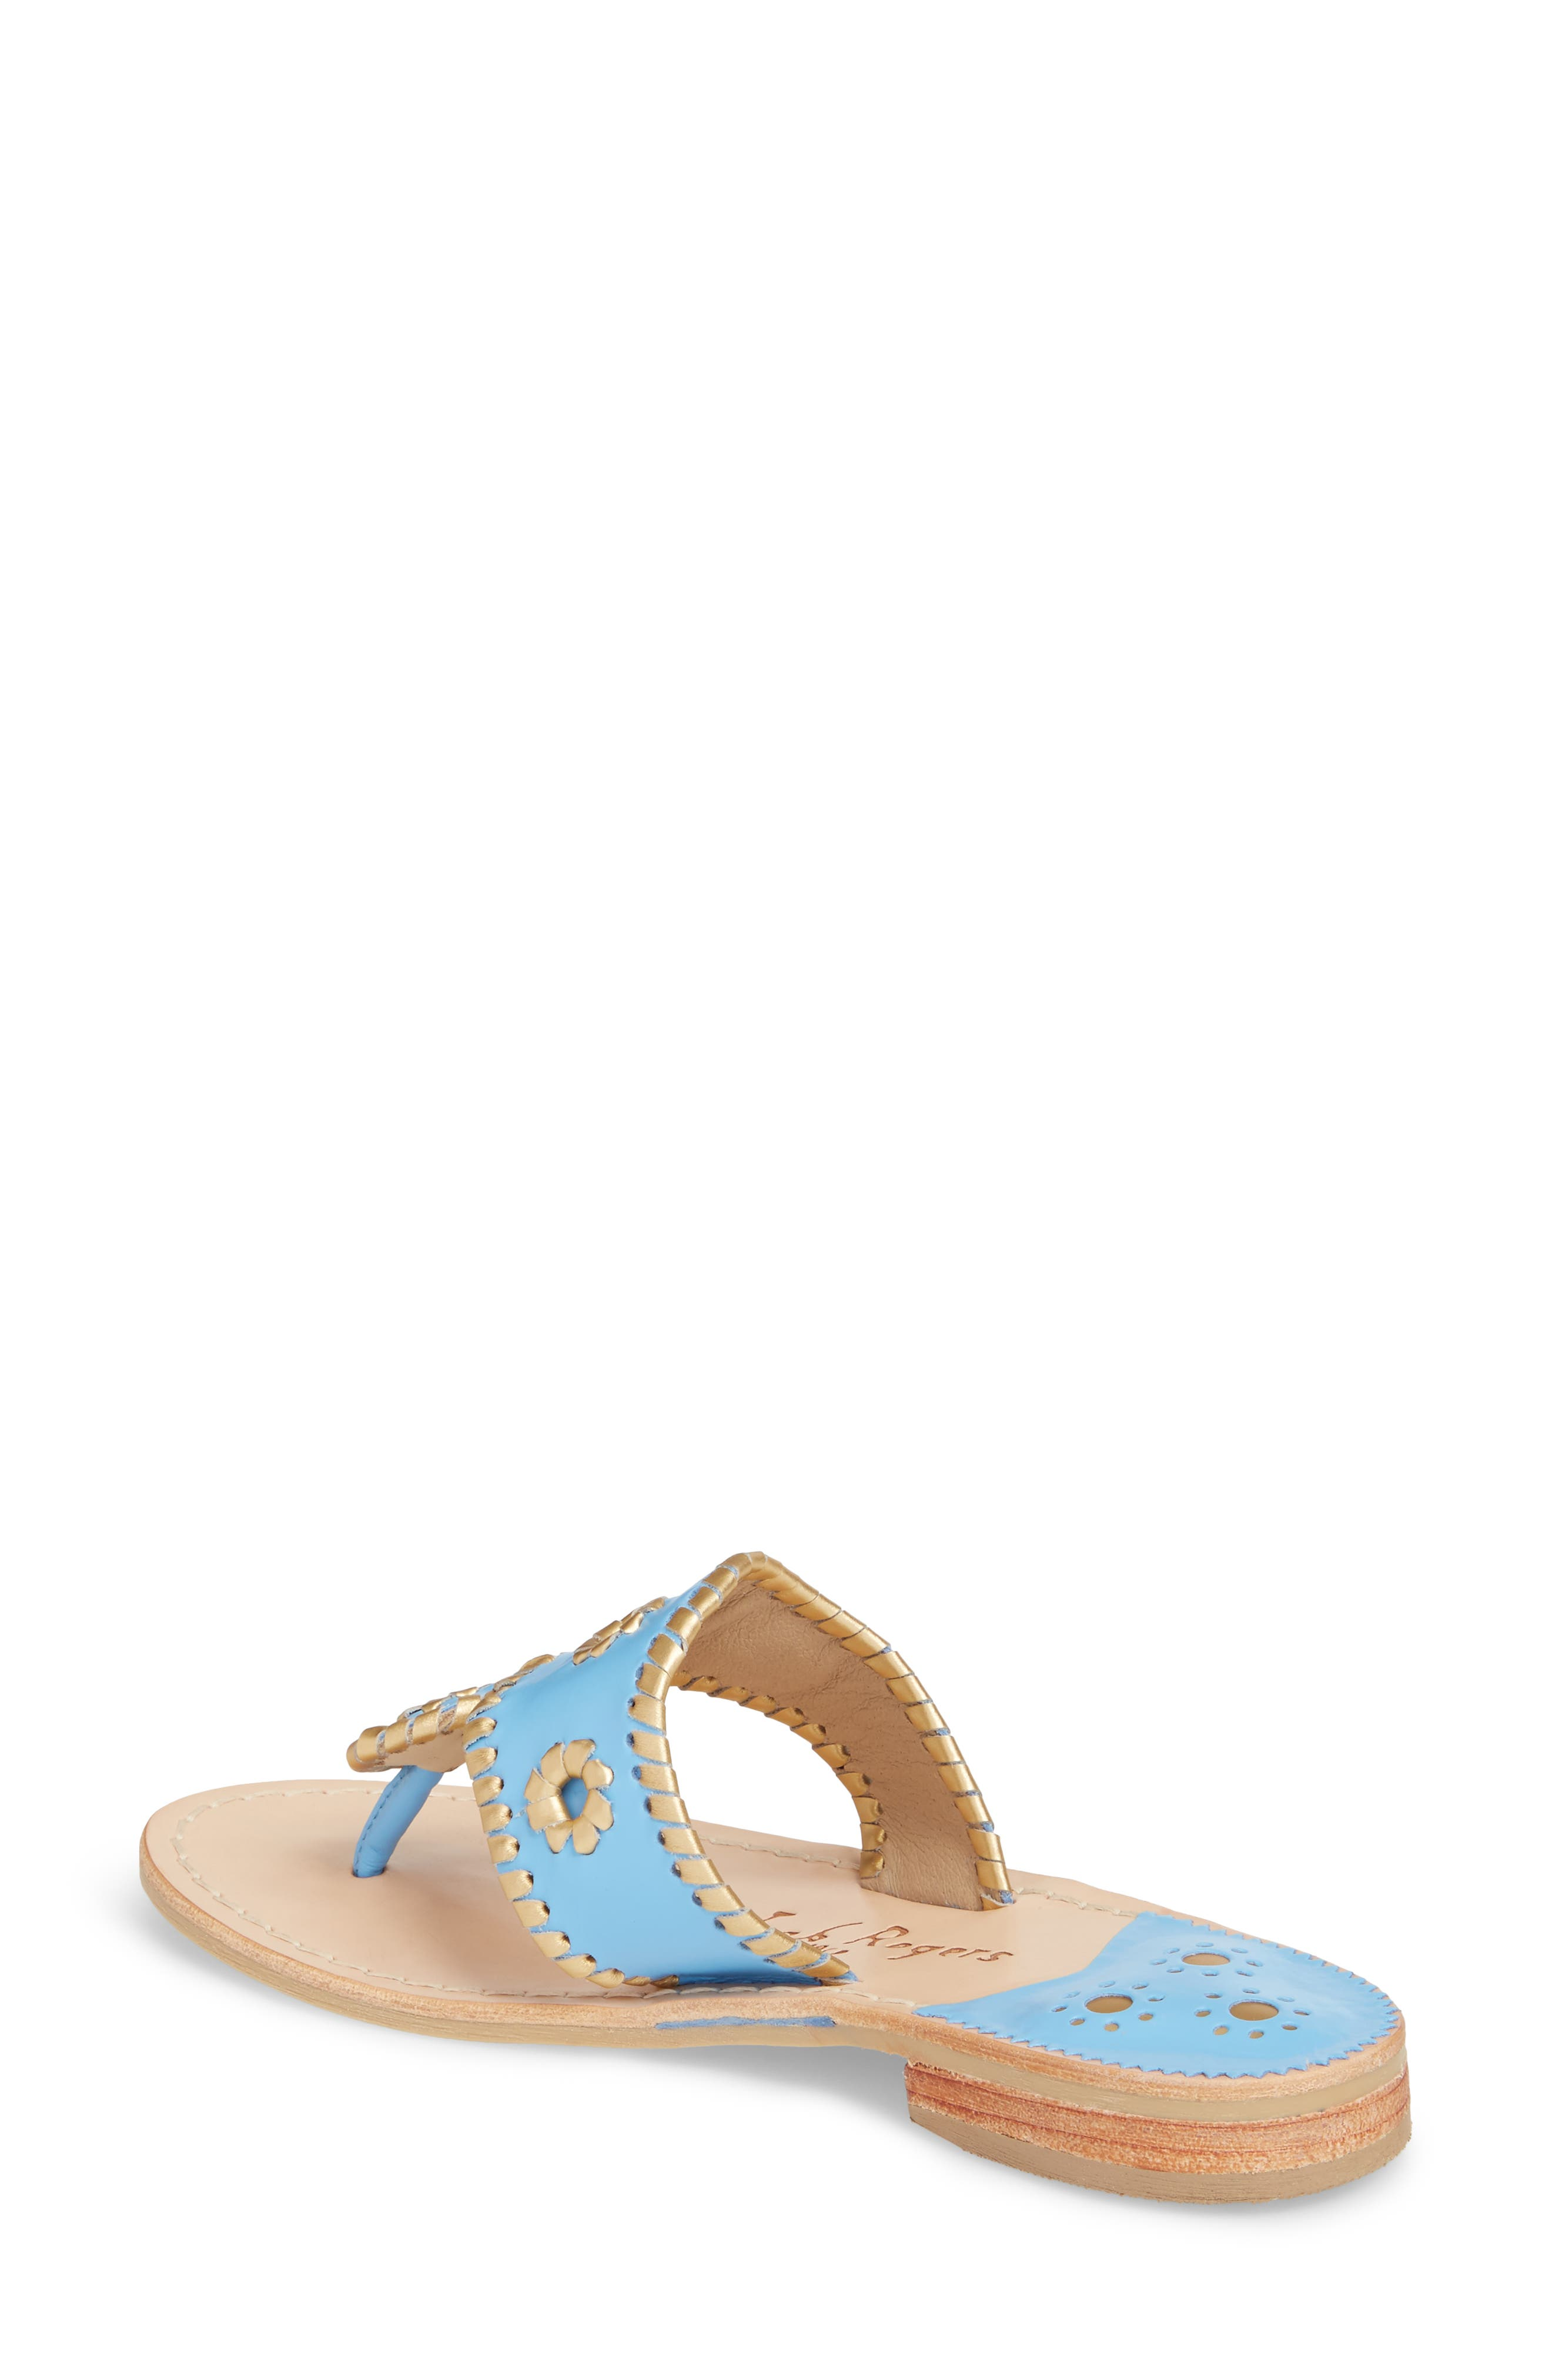 Hollis Flat Sandal,                             Alternate thumbnail 2, color,                             406